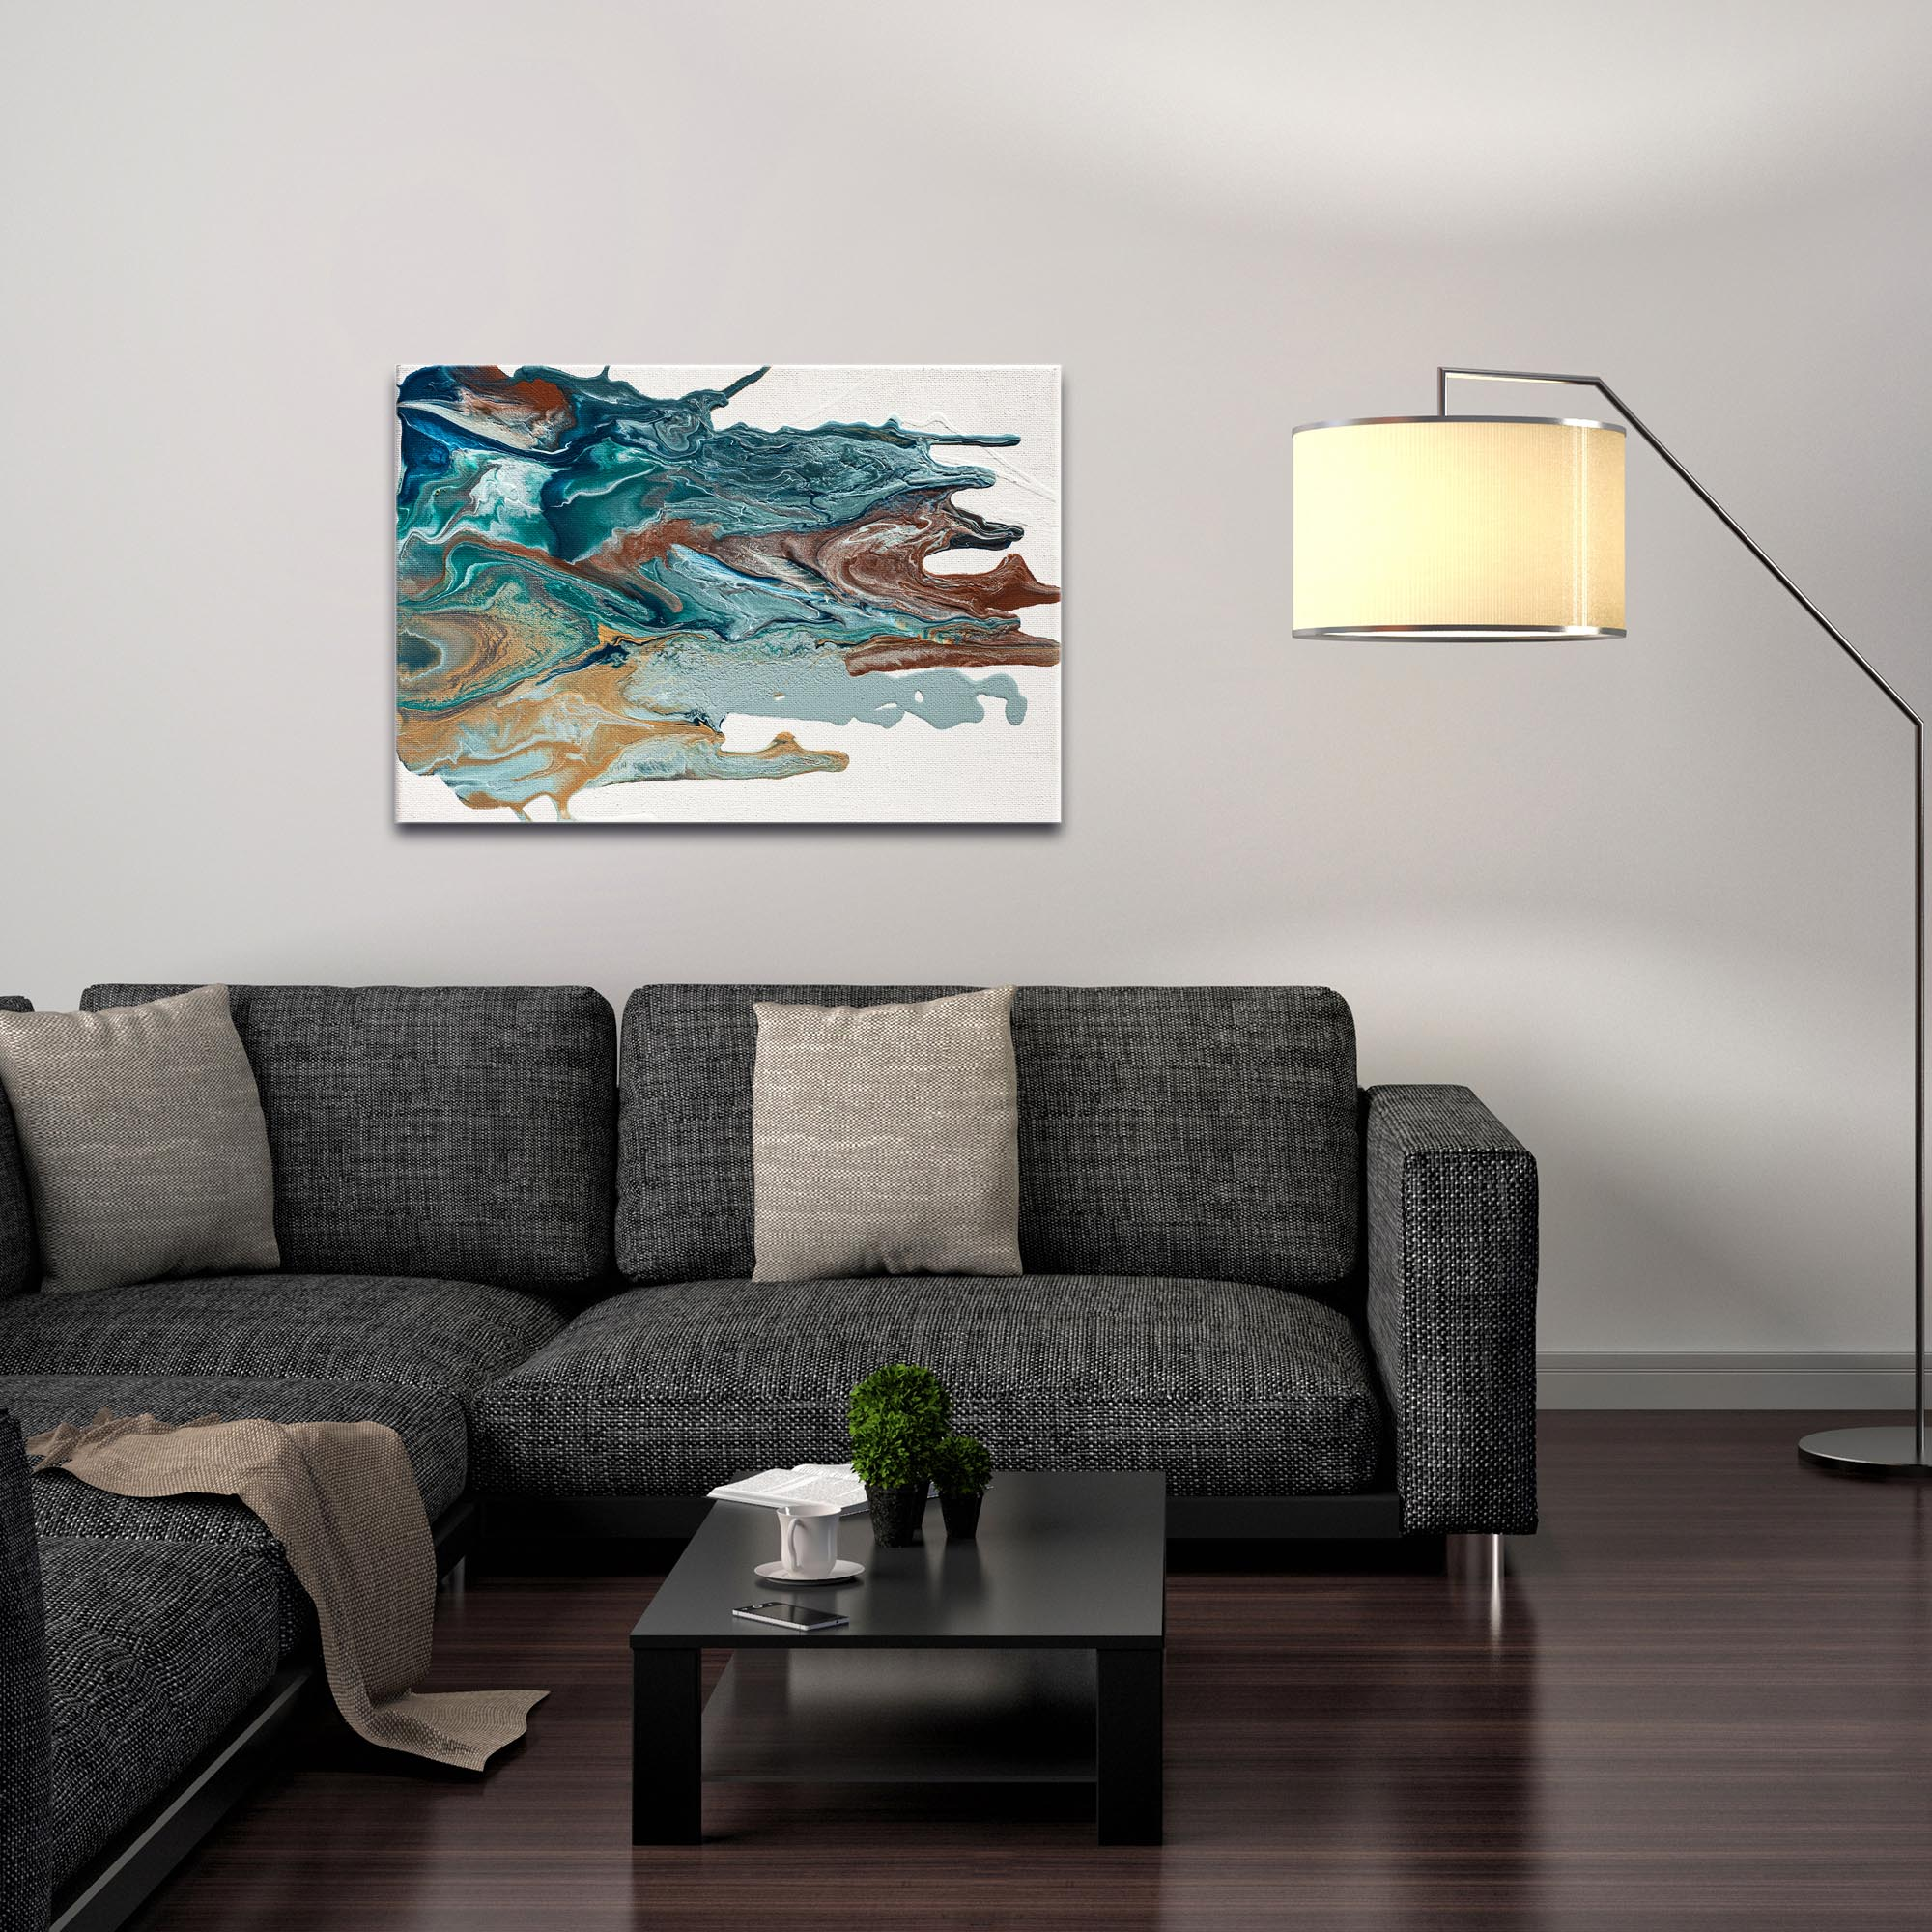 Abstract Wall Art 'Earth 1' - Urban Splatter Decor on Metal or Plexiglass - Image 3